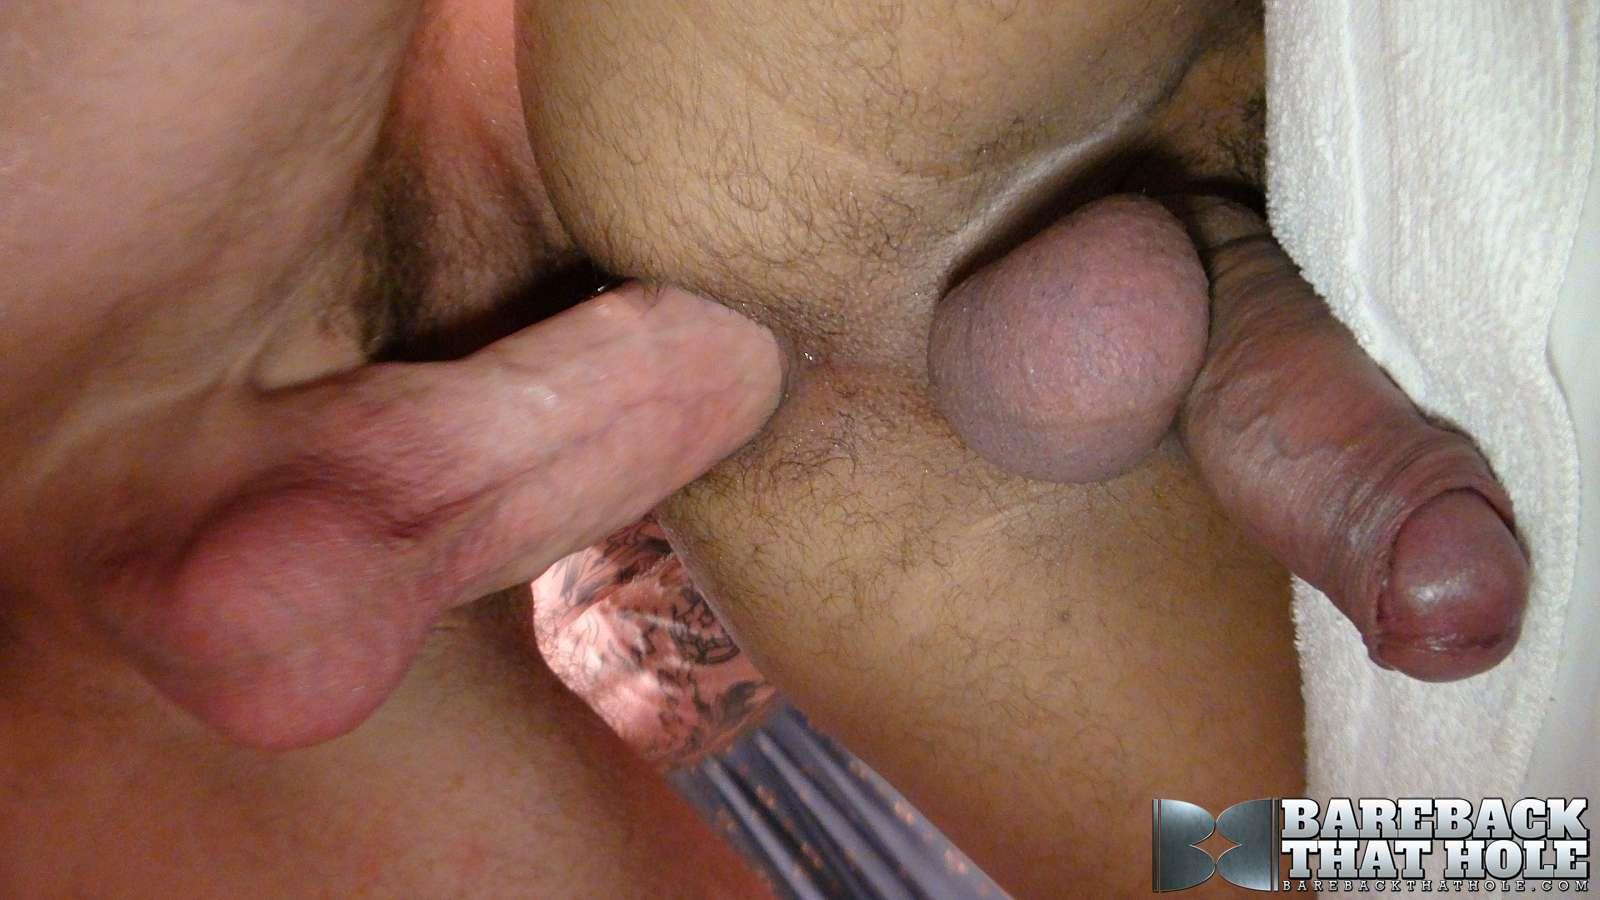 Pt1 big long dick nigga flacko pounding raiden039s boy pussy dick suckin